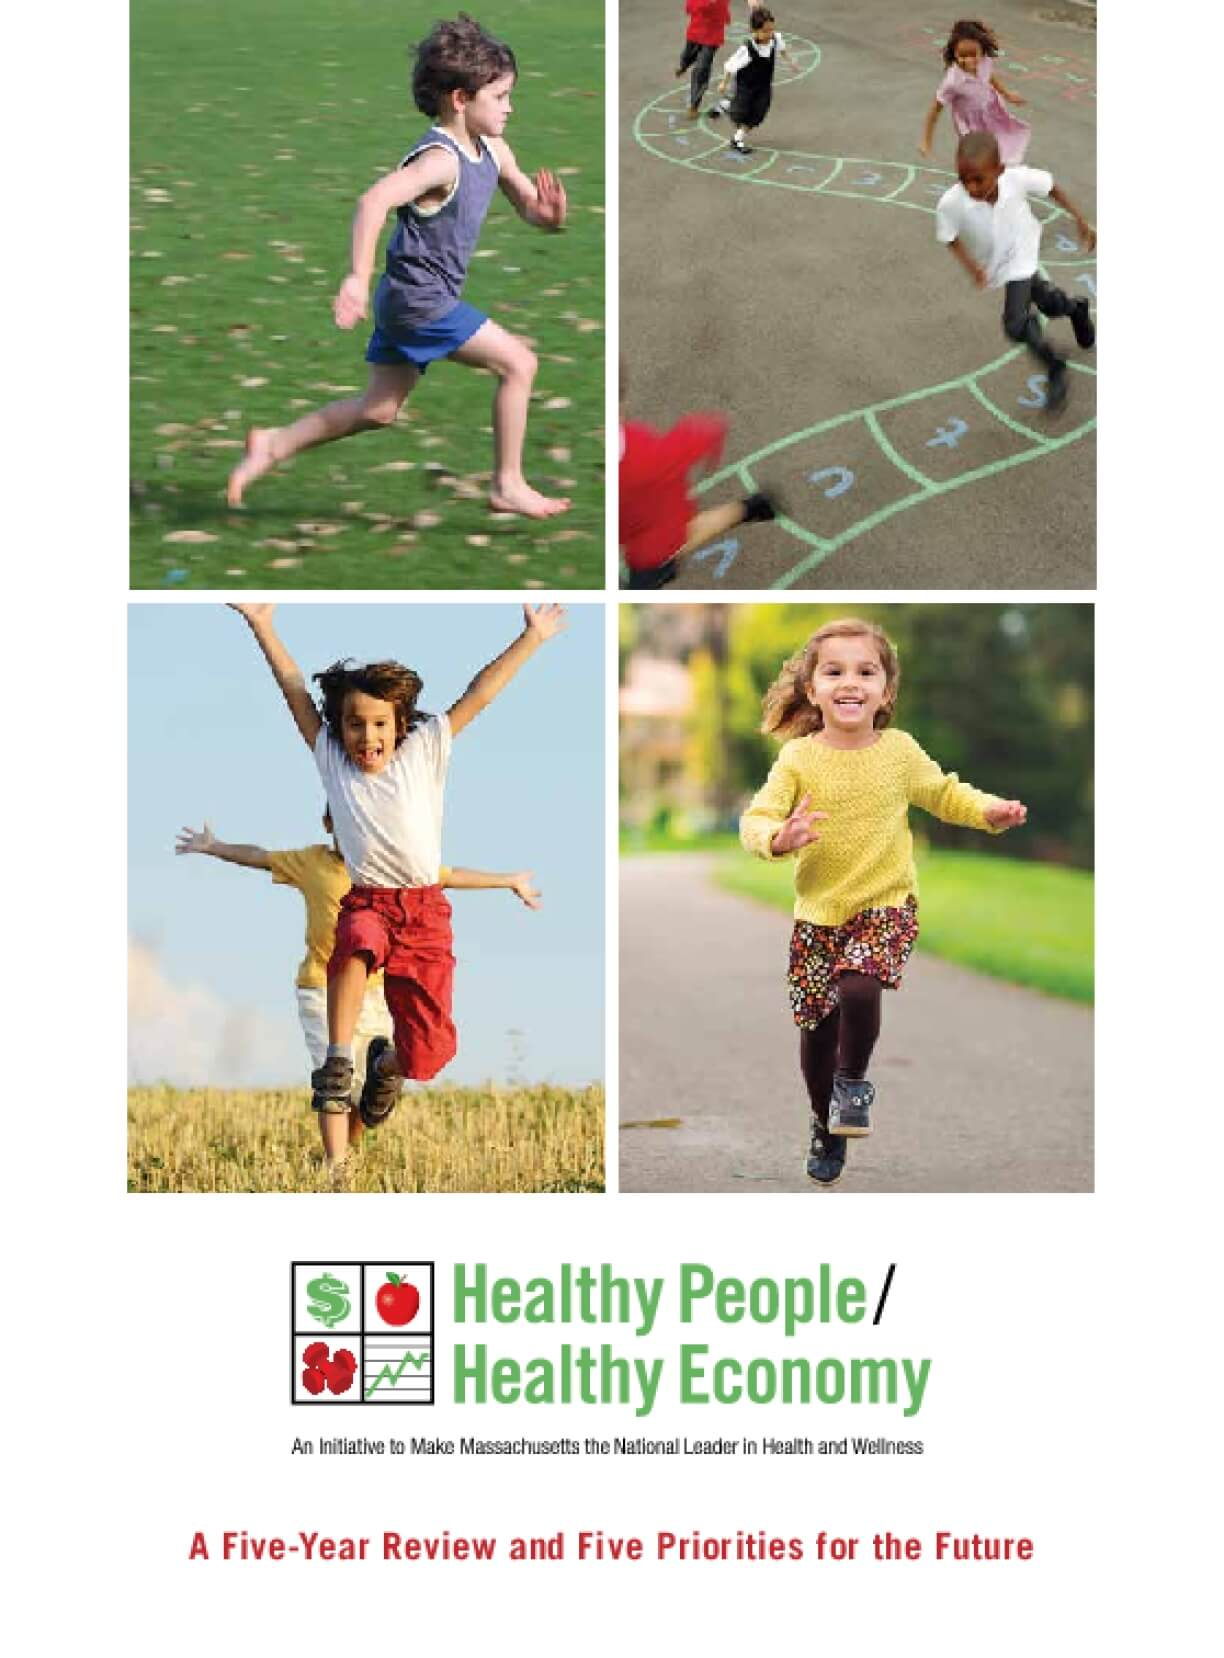 Healthy People/Healthy Economy: A Five-Year Review and Five Priorities for the Future